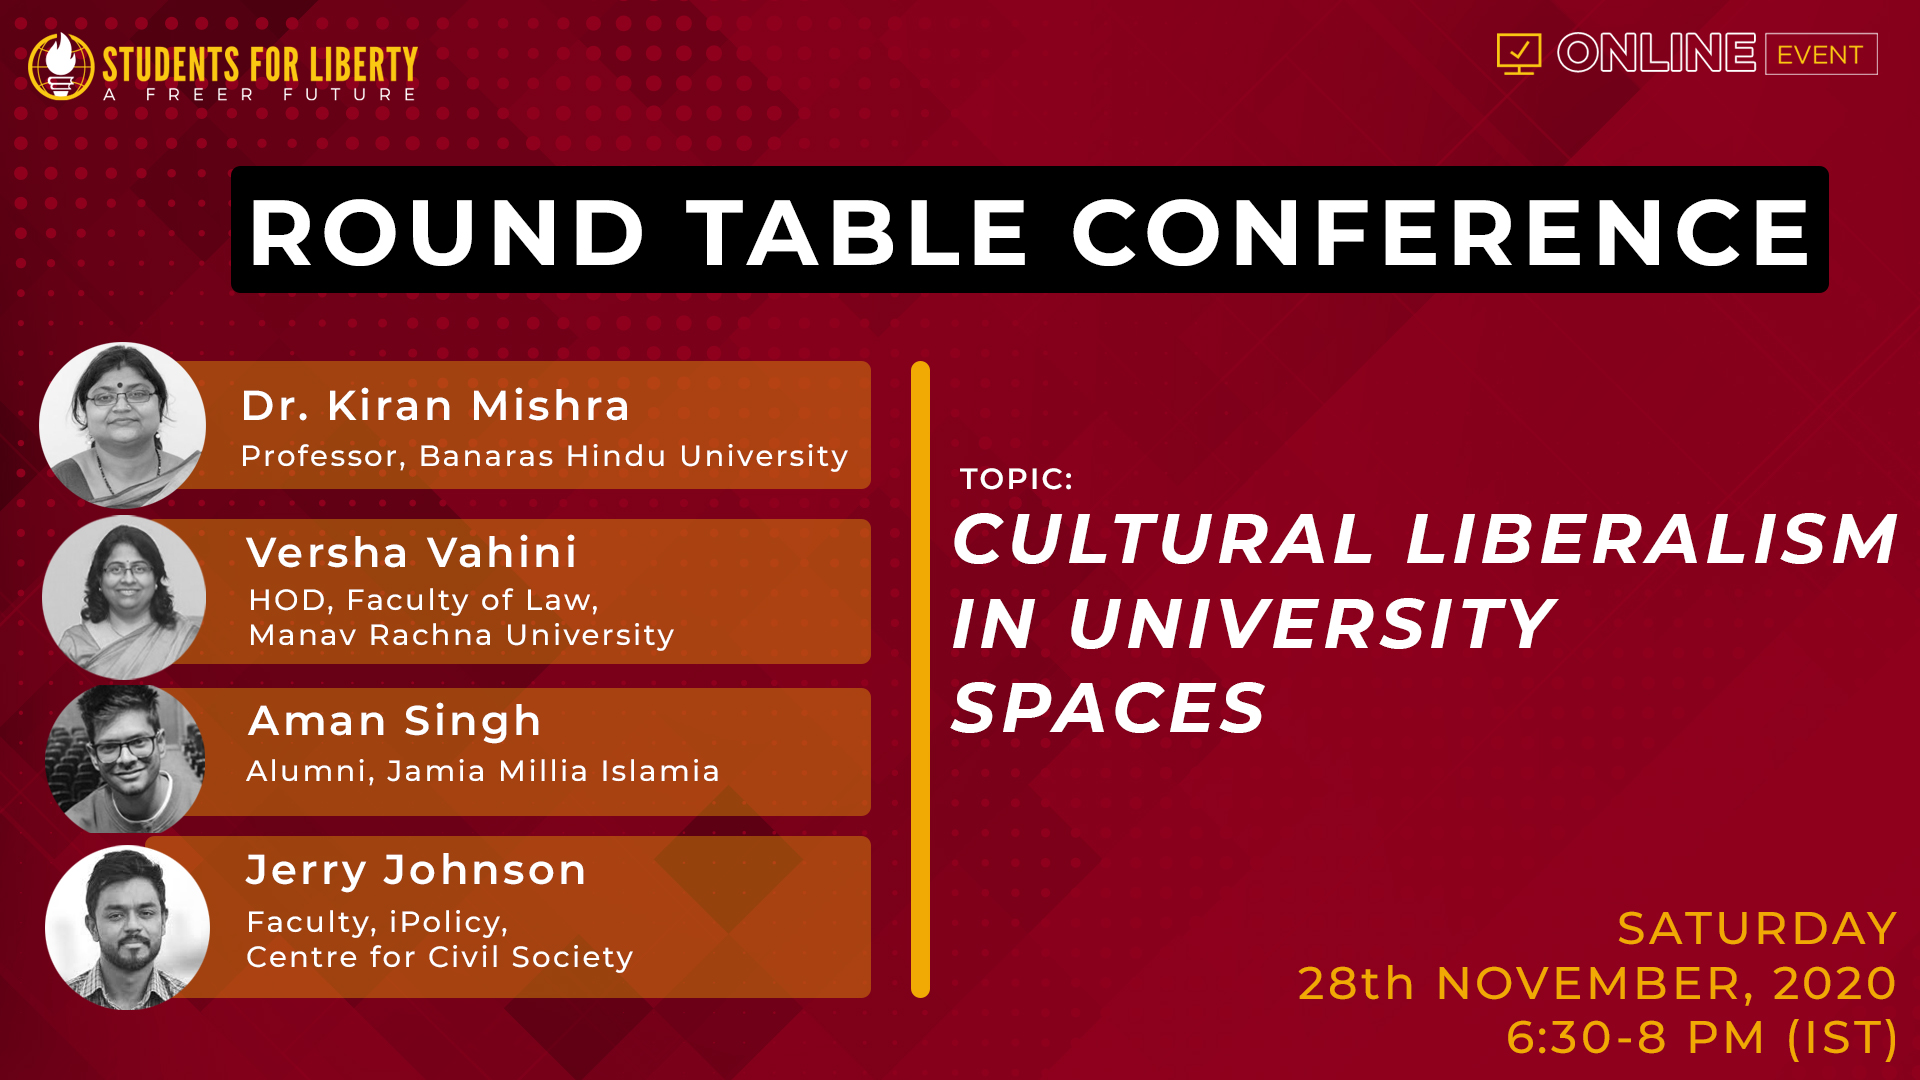 Round Table Conference